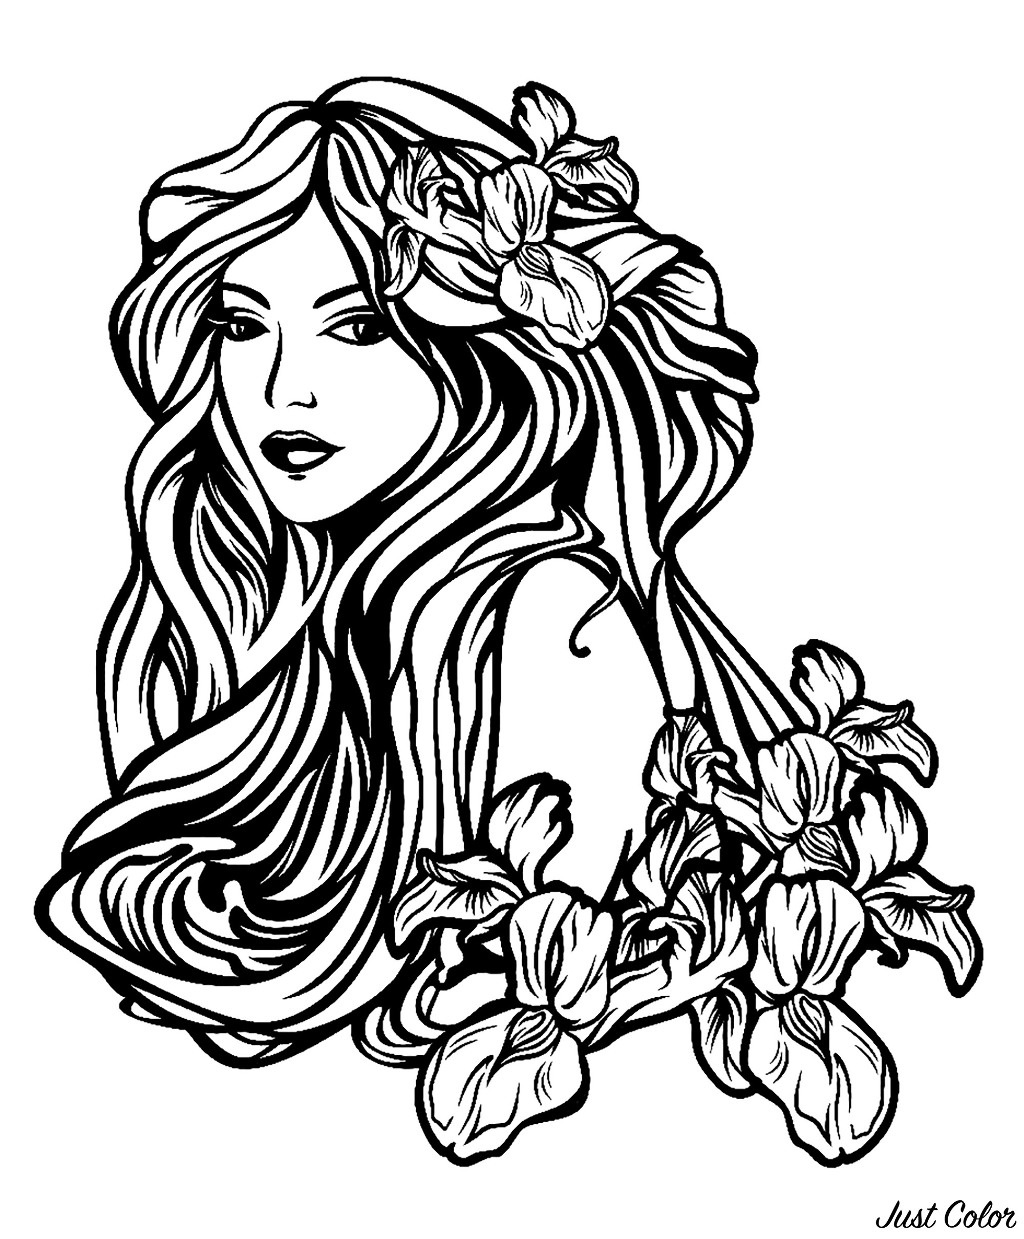 Beautiful woman with long hair among iris flowers - Art nouveau style, perfect for a tattoo